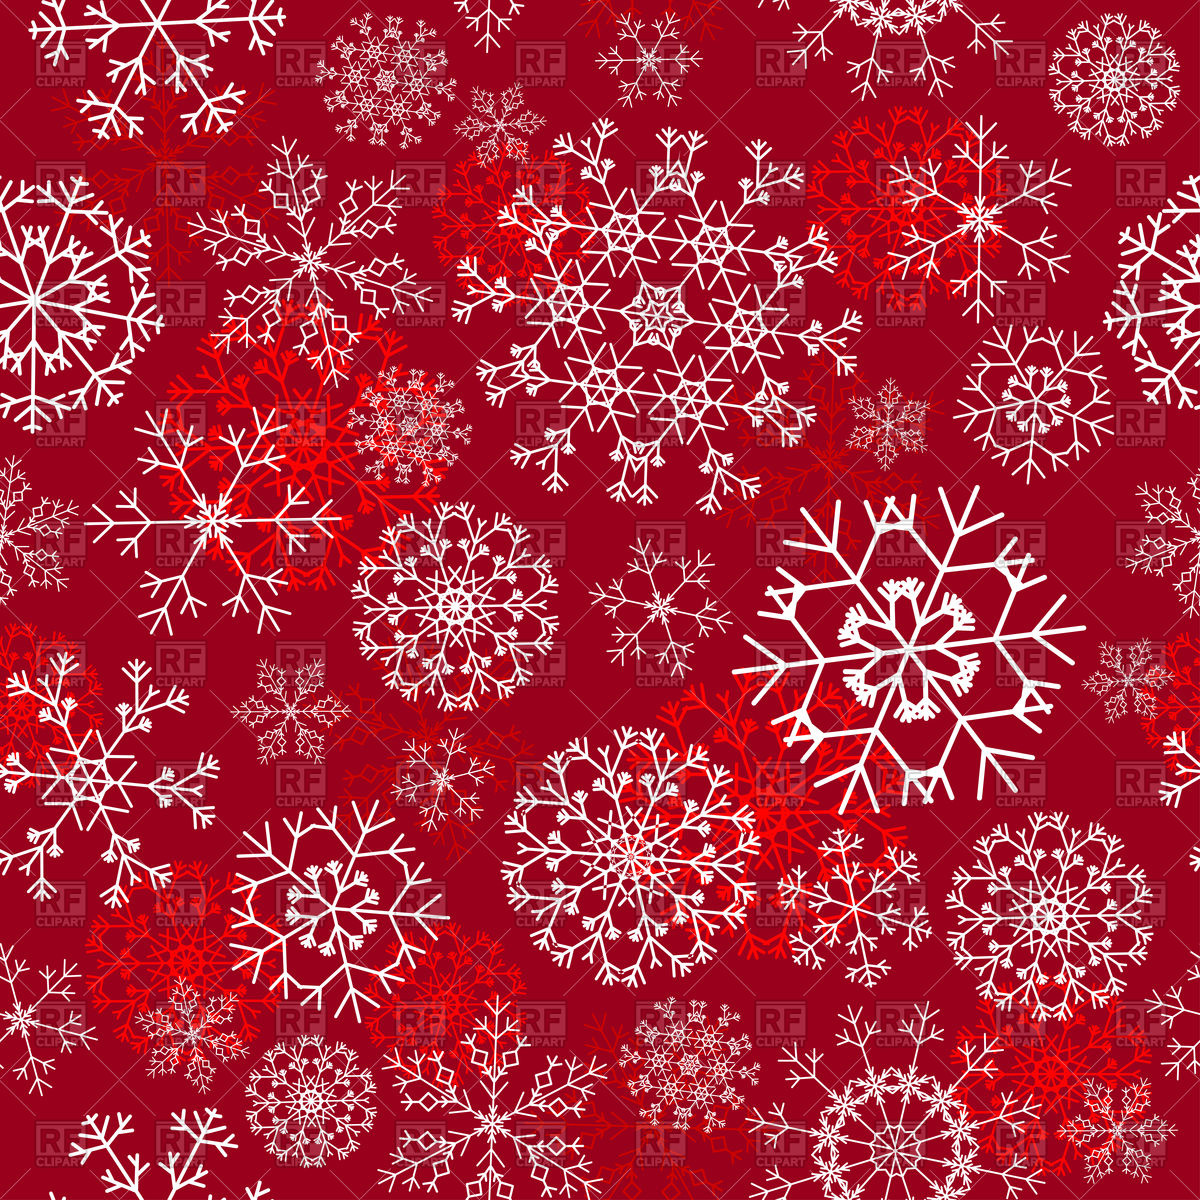 1200x1200 Seamless Snowflakes Christmas Background Vector Image Vector